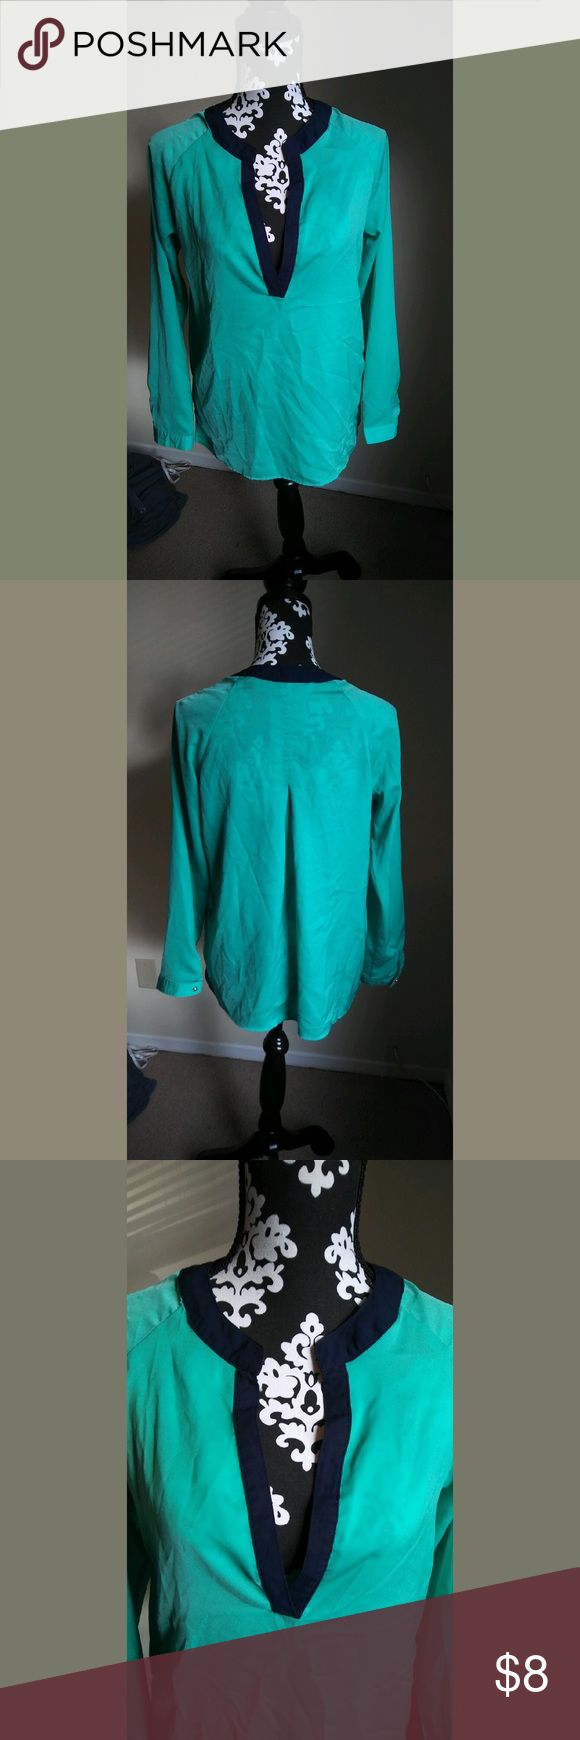 Navy and Turquoise Shirt Super cute navy and turquoise v neck! No problems, just a little wrinkled! Barely ever worn! Size S Buttons Tops Blouses